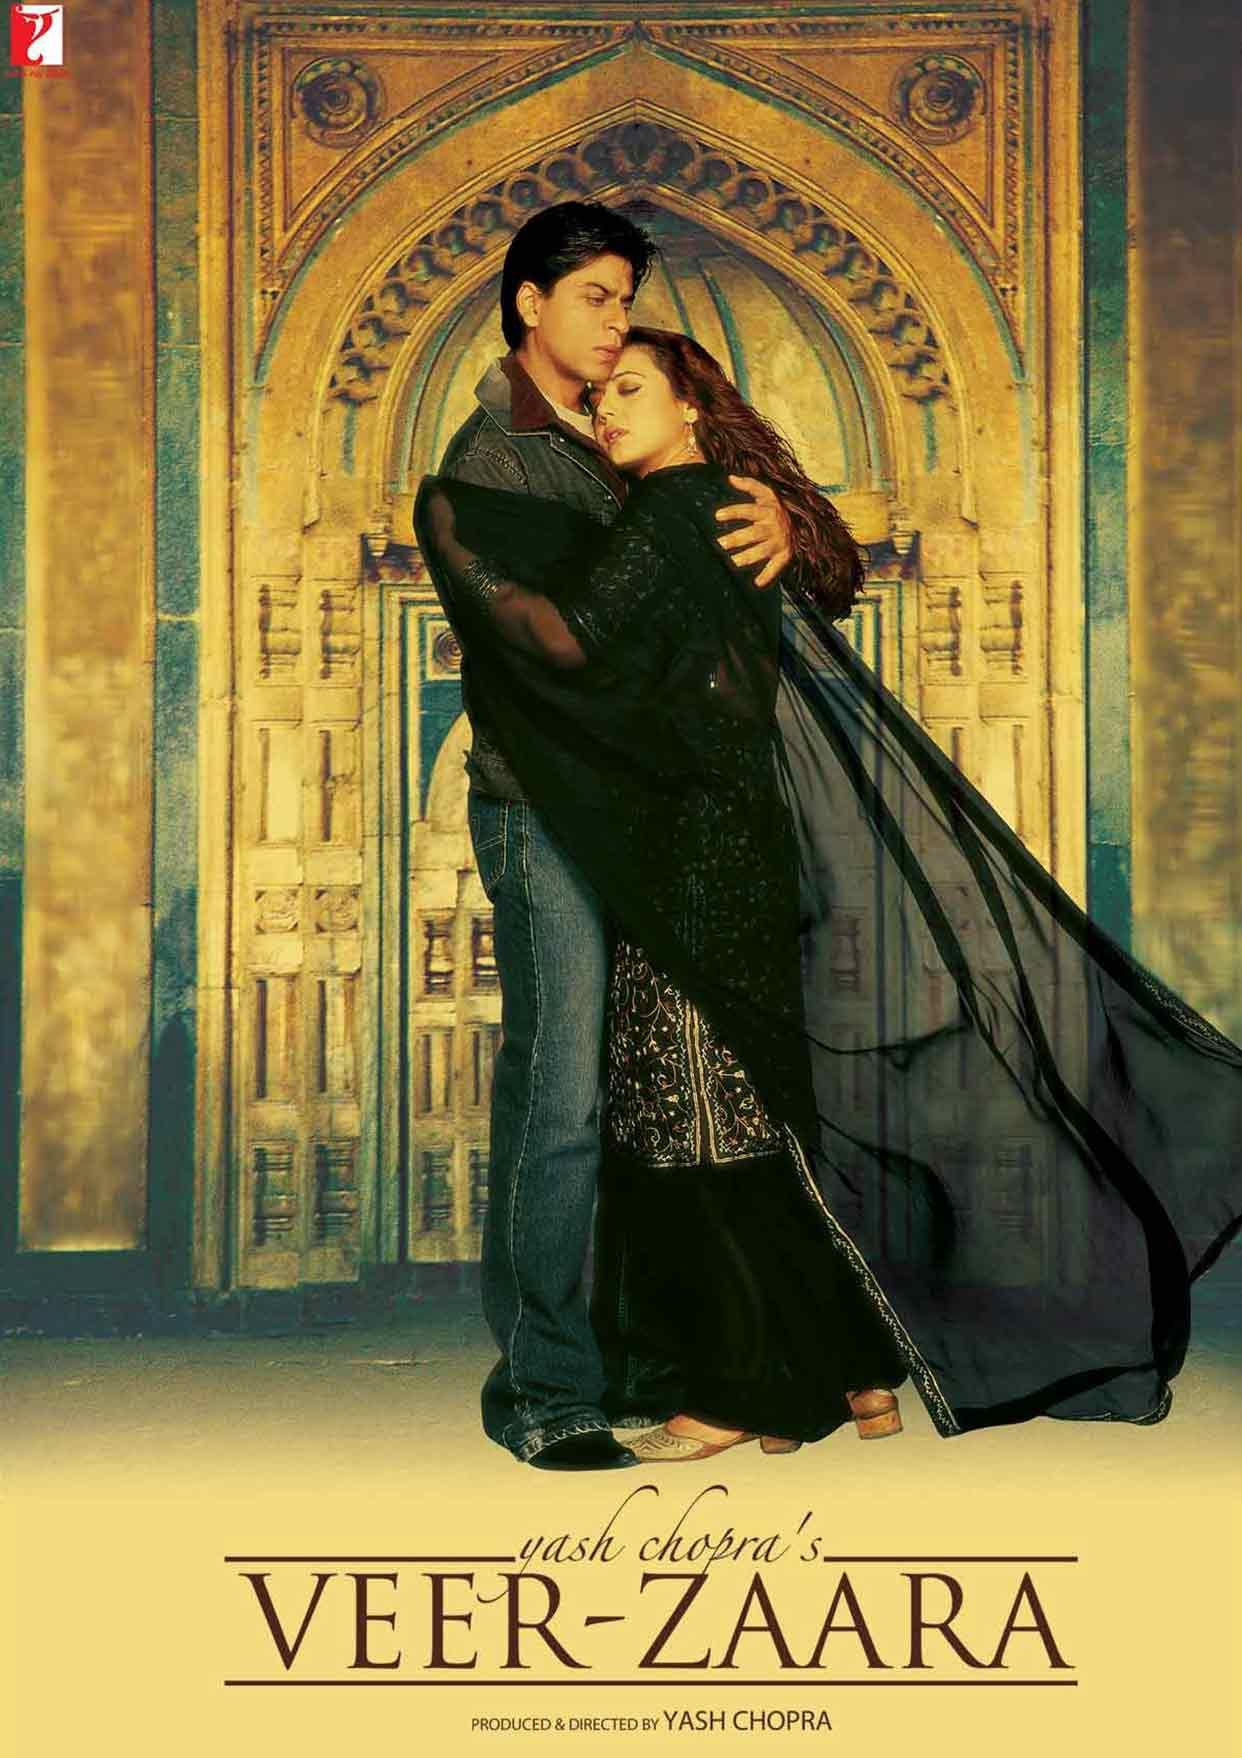 Veer Zaara Wallpaper Group Pictures 61 In 2020 With Images Movies Online Free Film Movies To Watch Online Free Movies Online